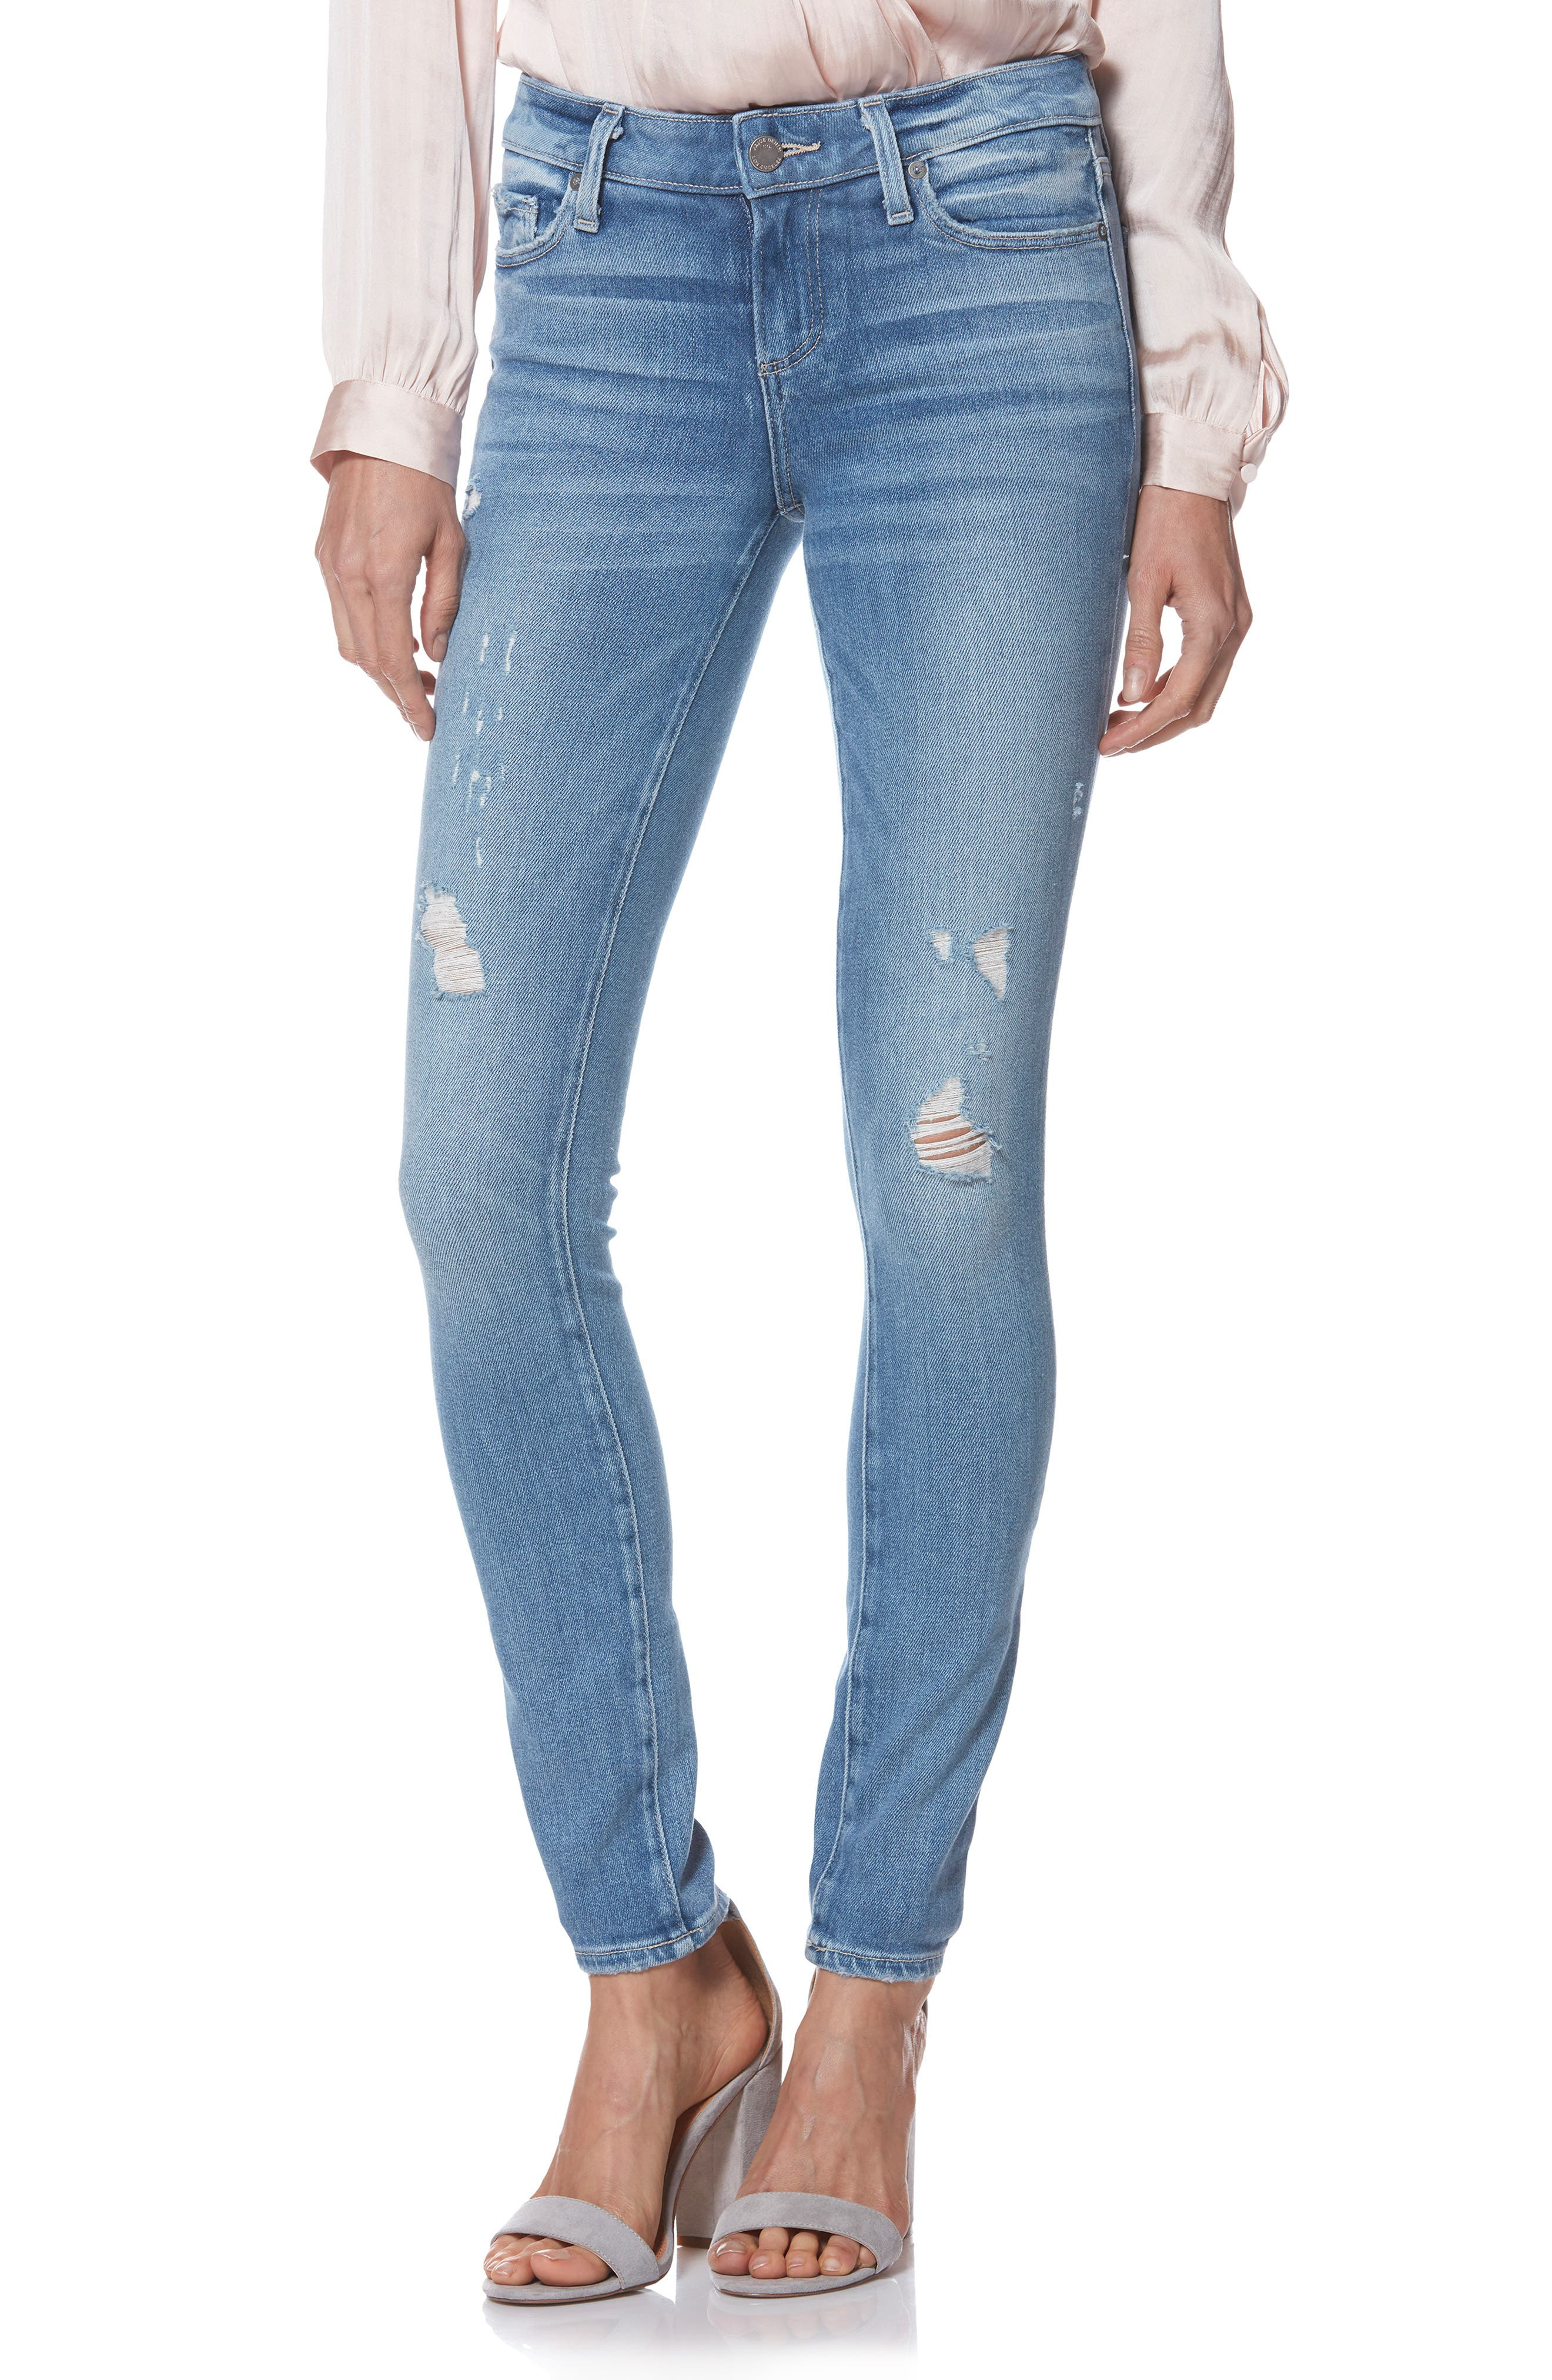 PAIGE Verdugo Ultra Skinny Jeans, Main, color, KAYSON DISTRESSED